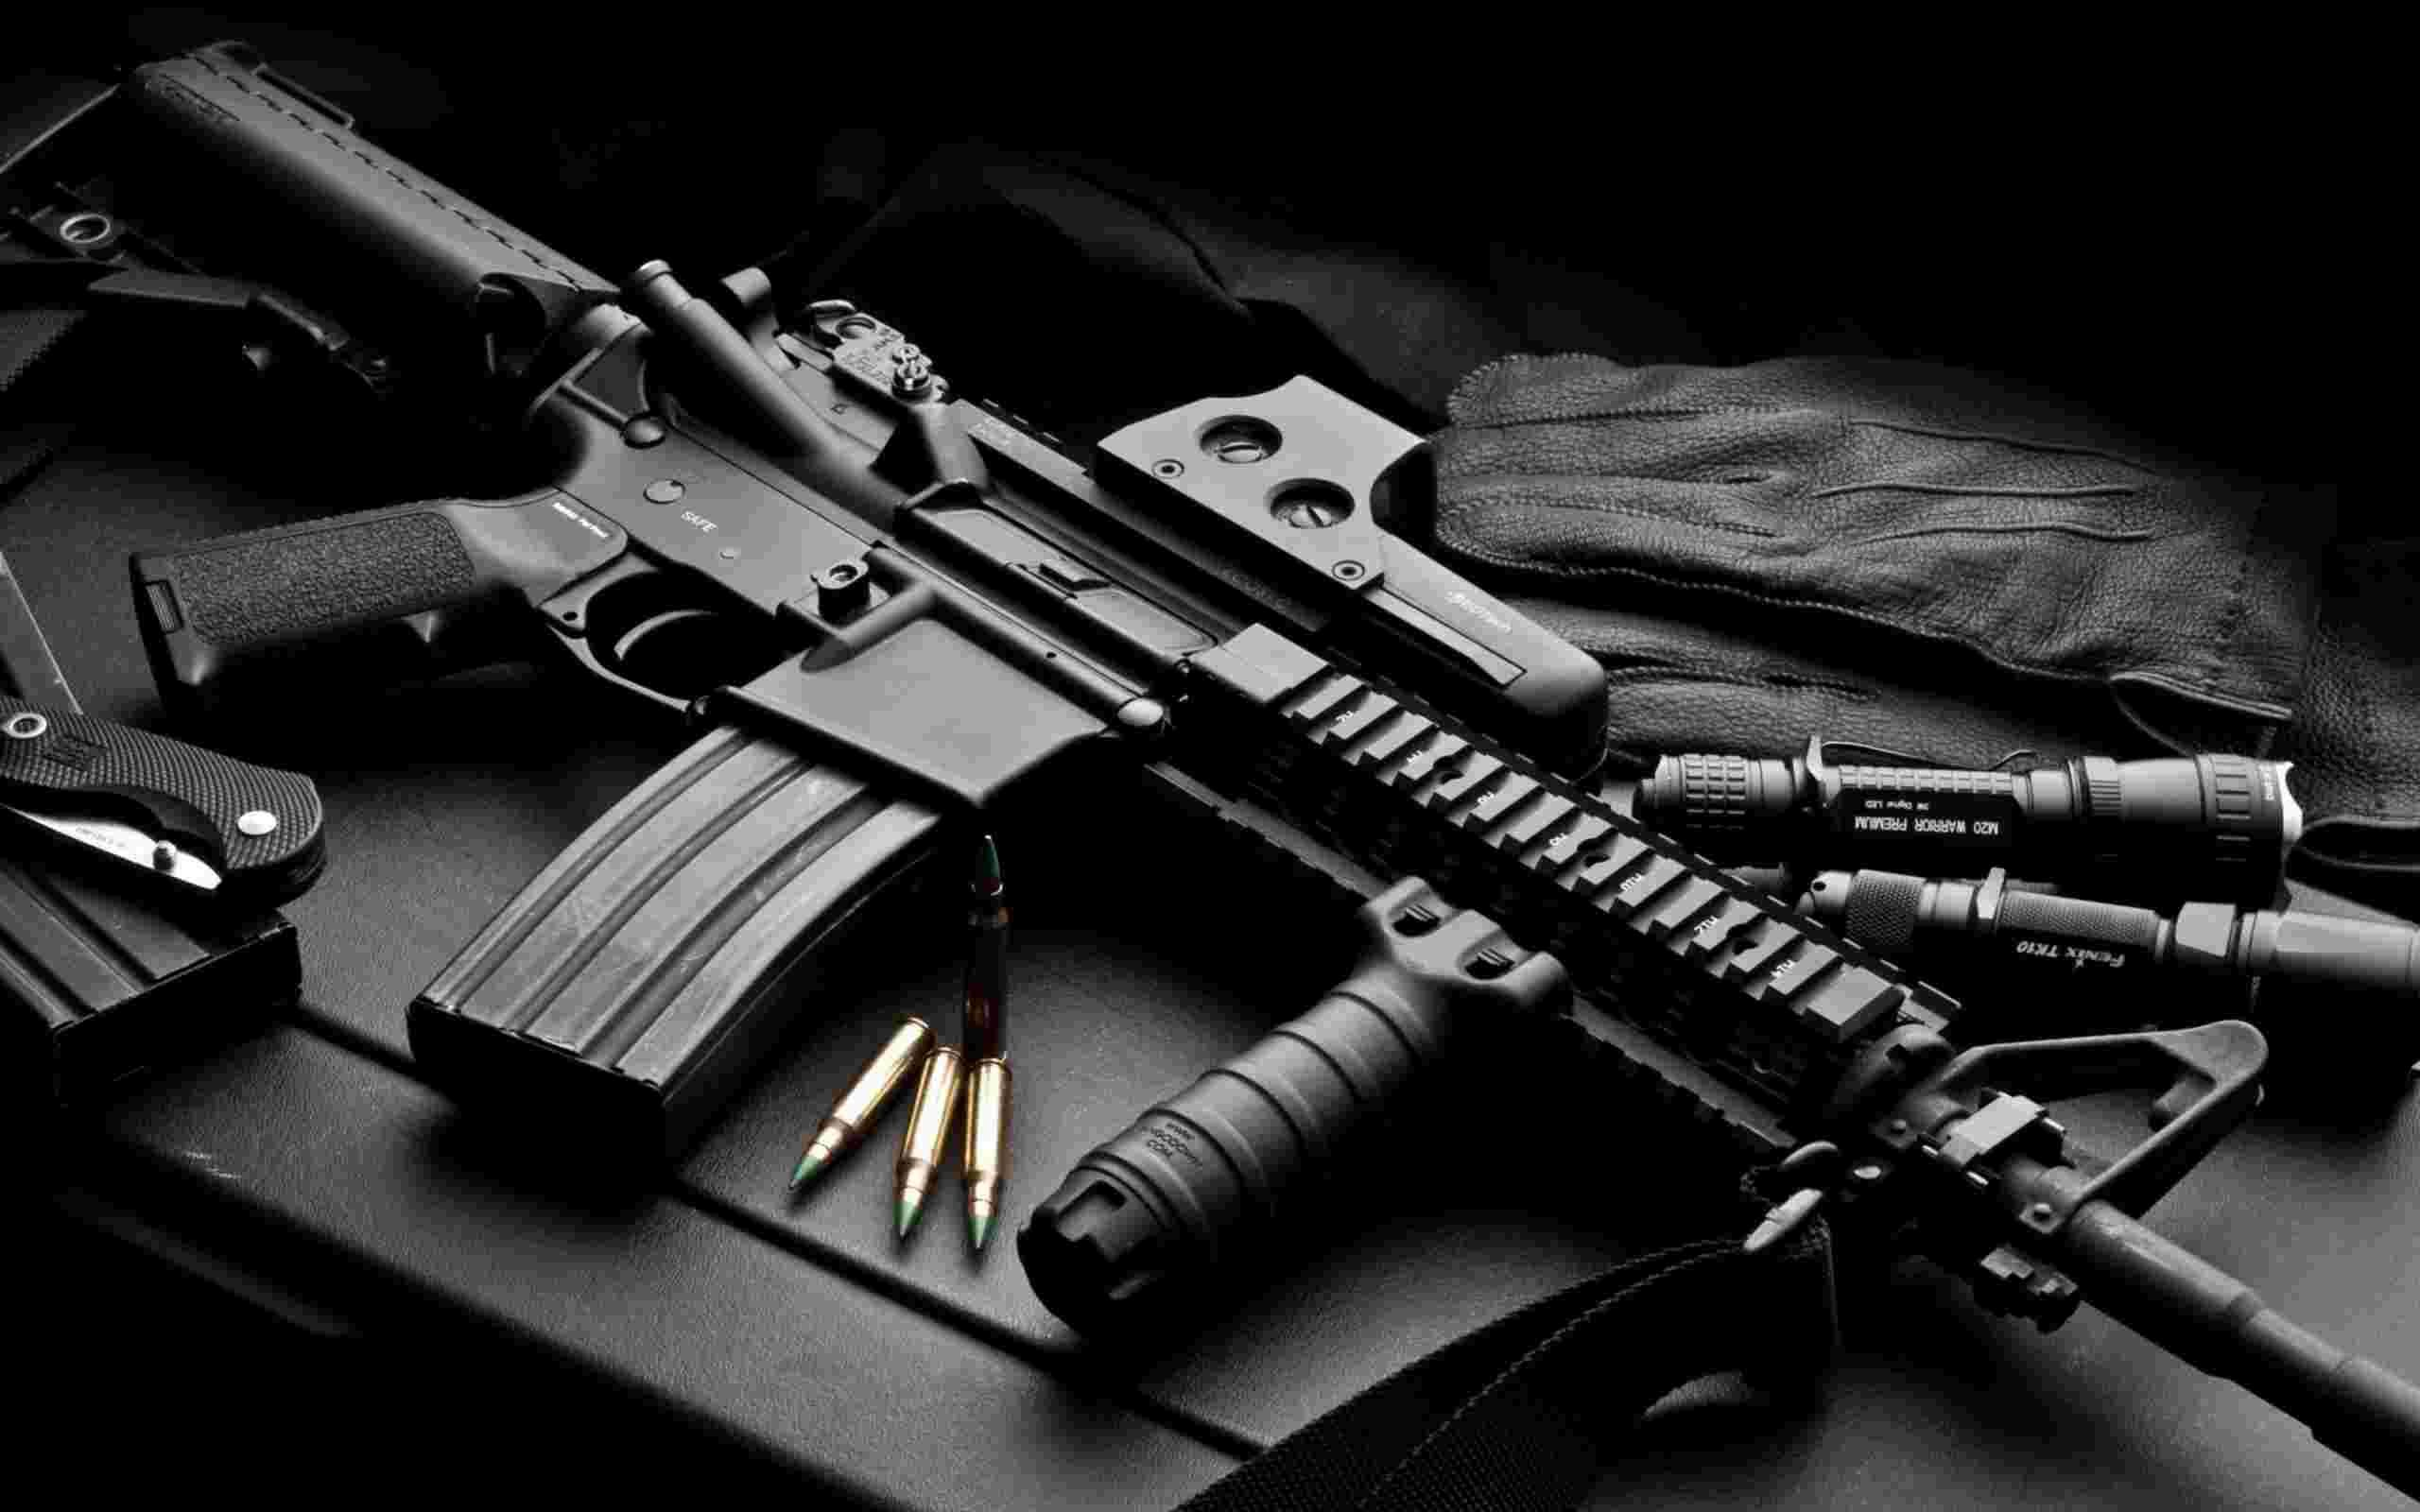 M4A1 Carbine Wallpaper HD | Guns | Pinterest | Guns ...